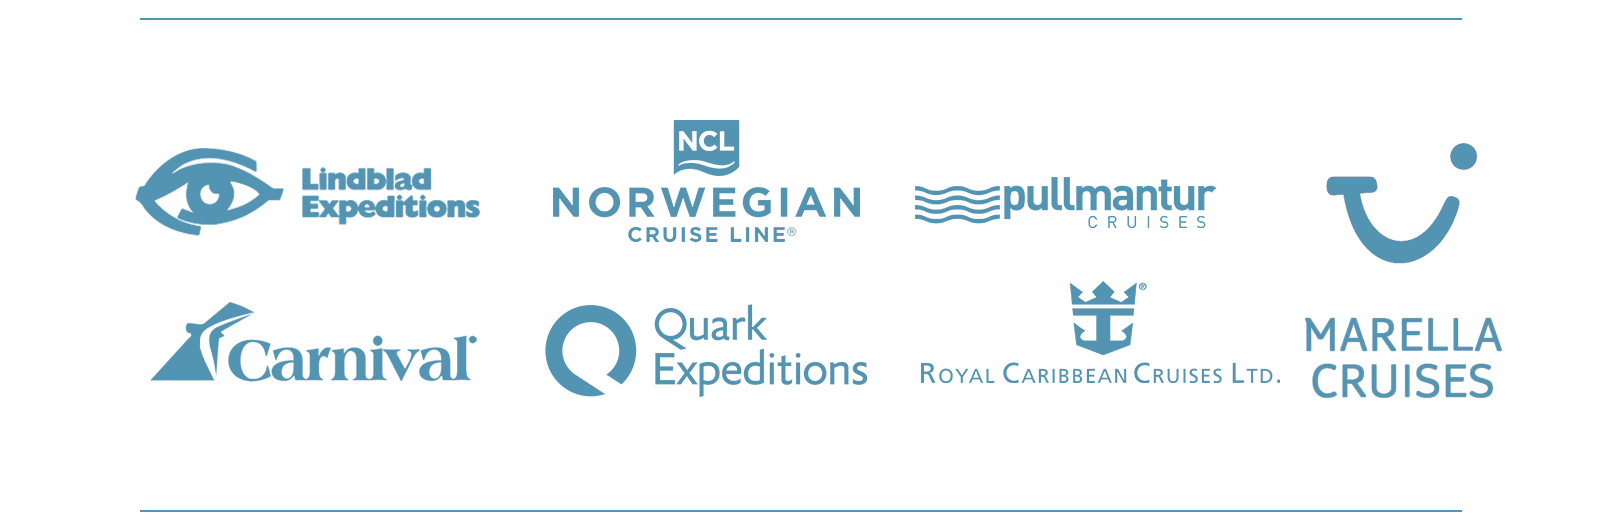 linblad expeditions norwegian cruise line pullmantur cruises carnival quark expeditions royal caribbean cruises ltd marella cruises blue on transparent background